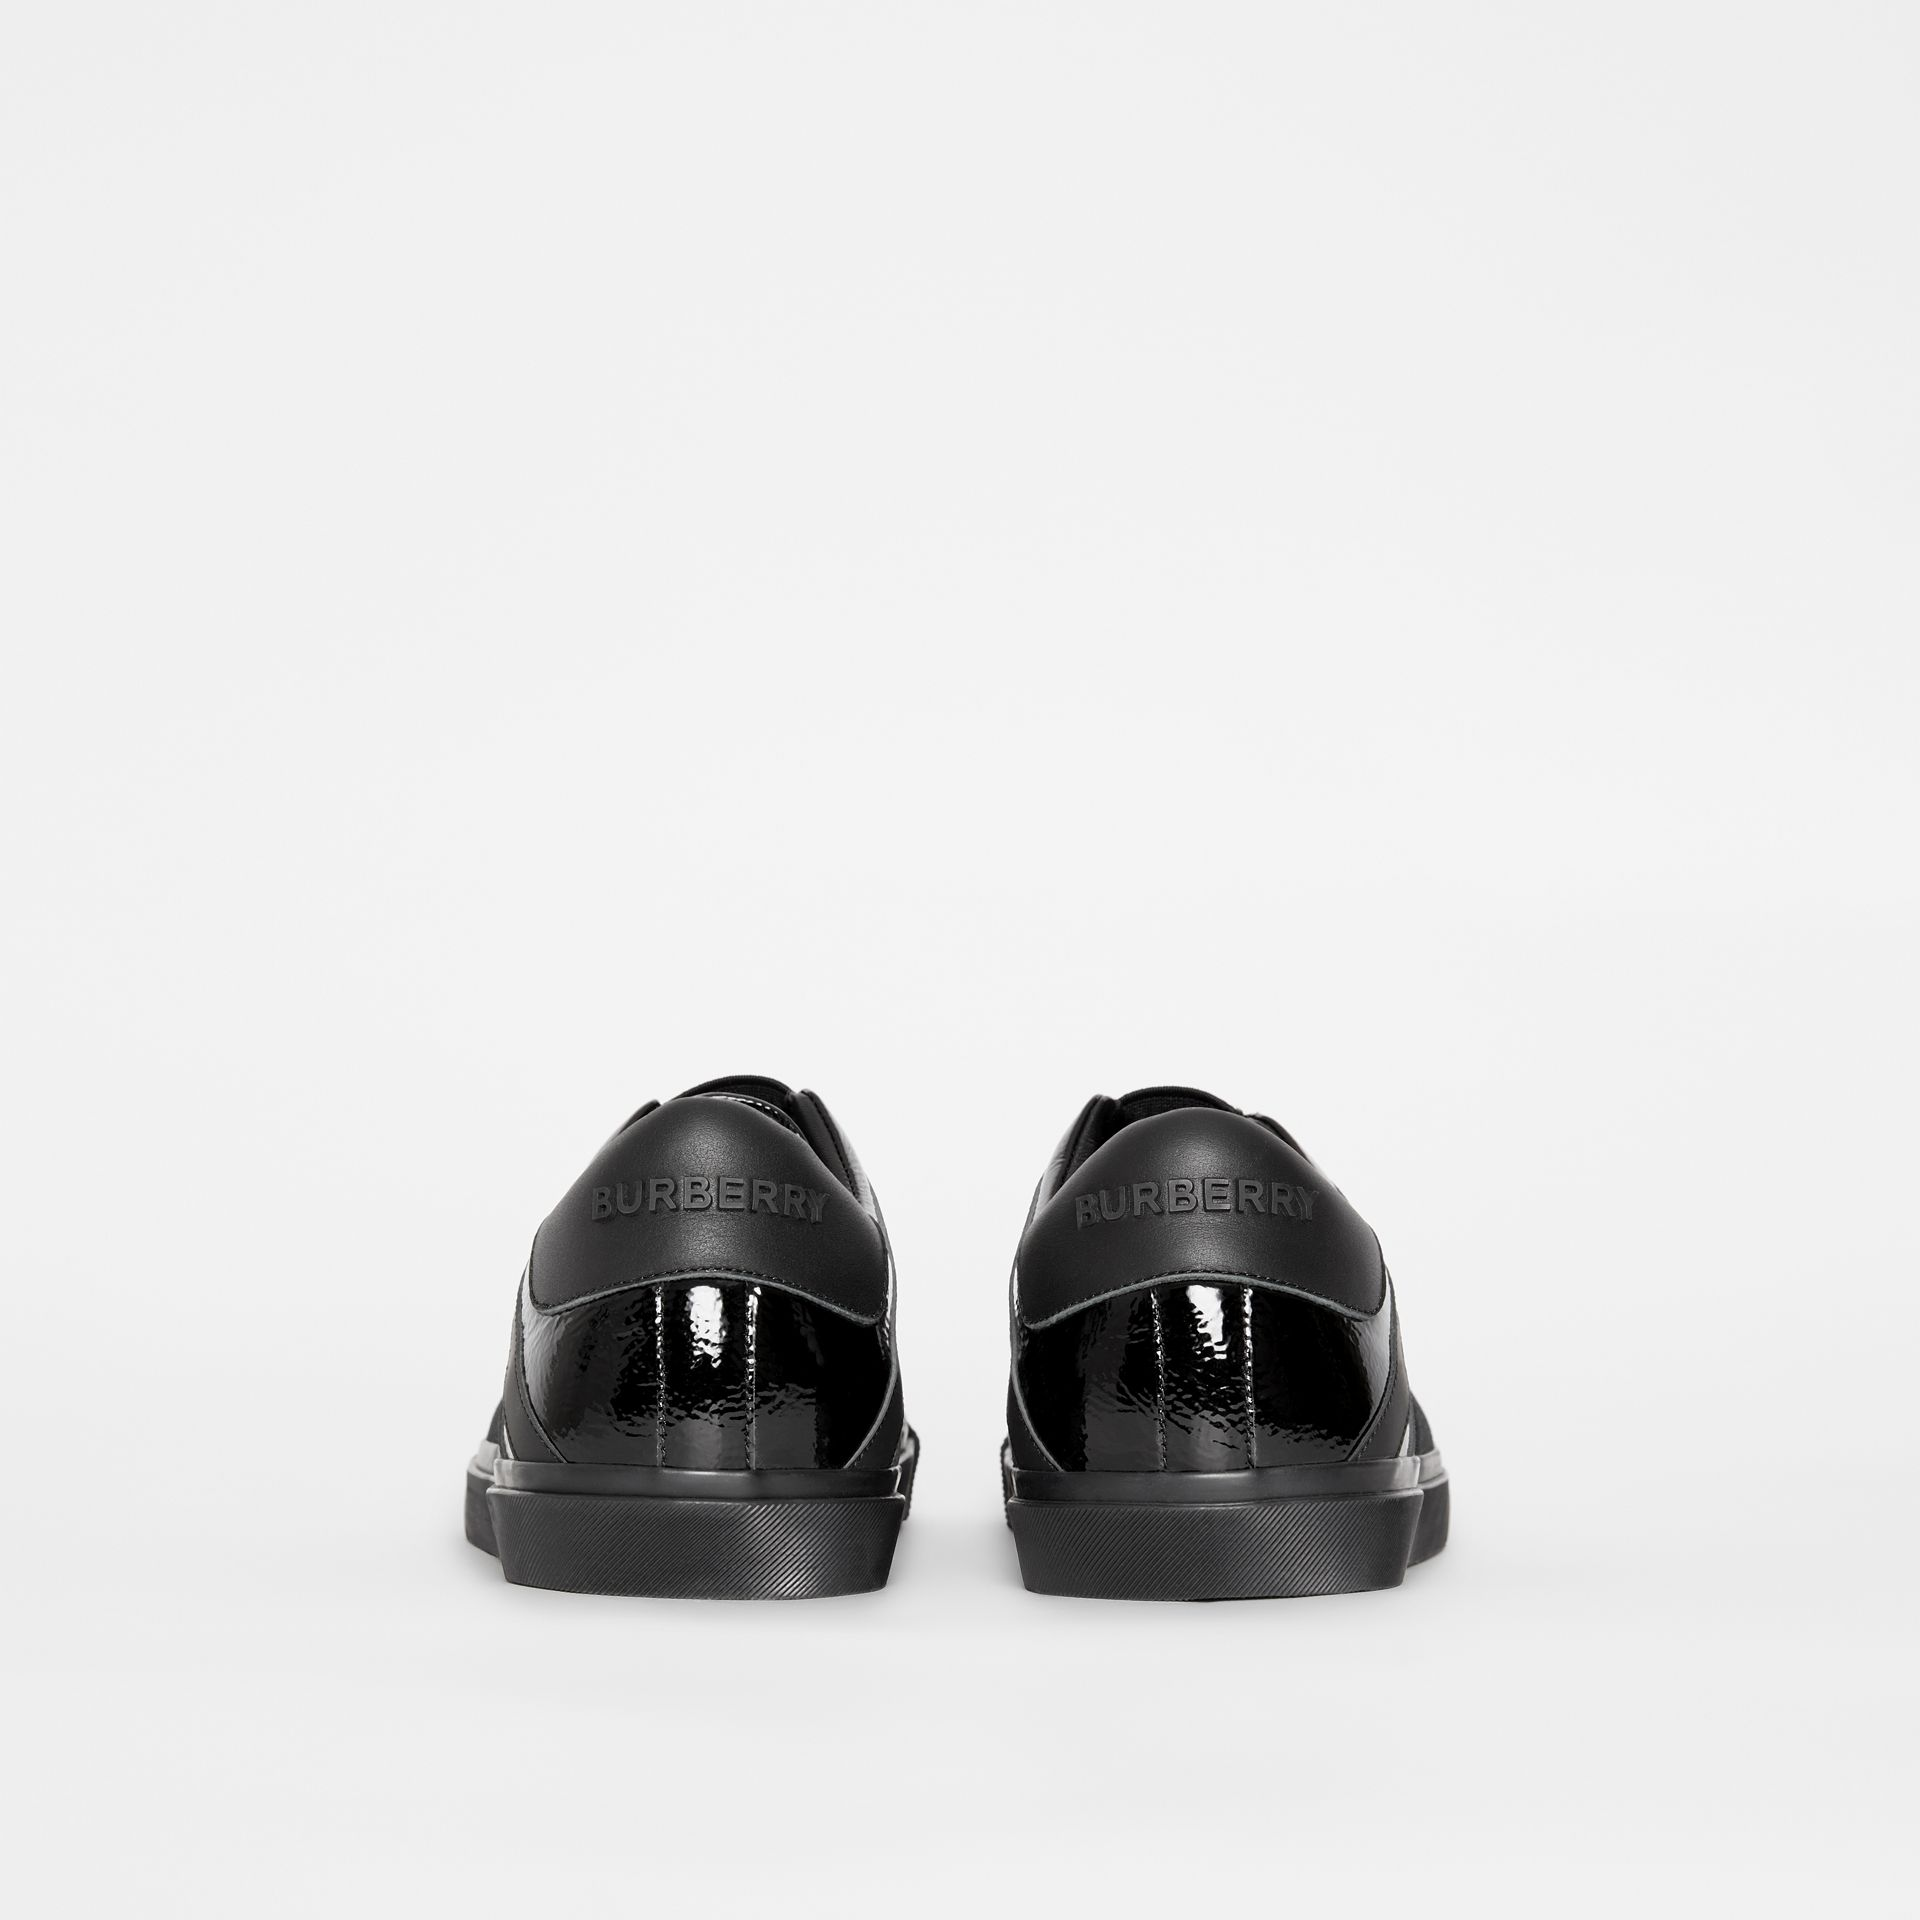 Union Jack Motif Slip-on Sneakers in Black - Men | Burberry - gallery image 3